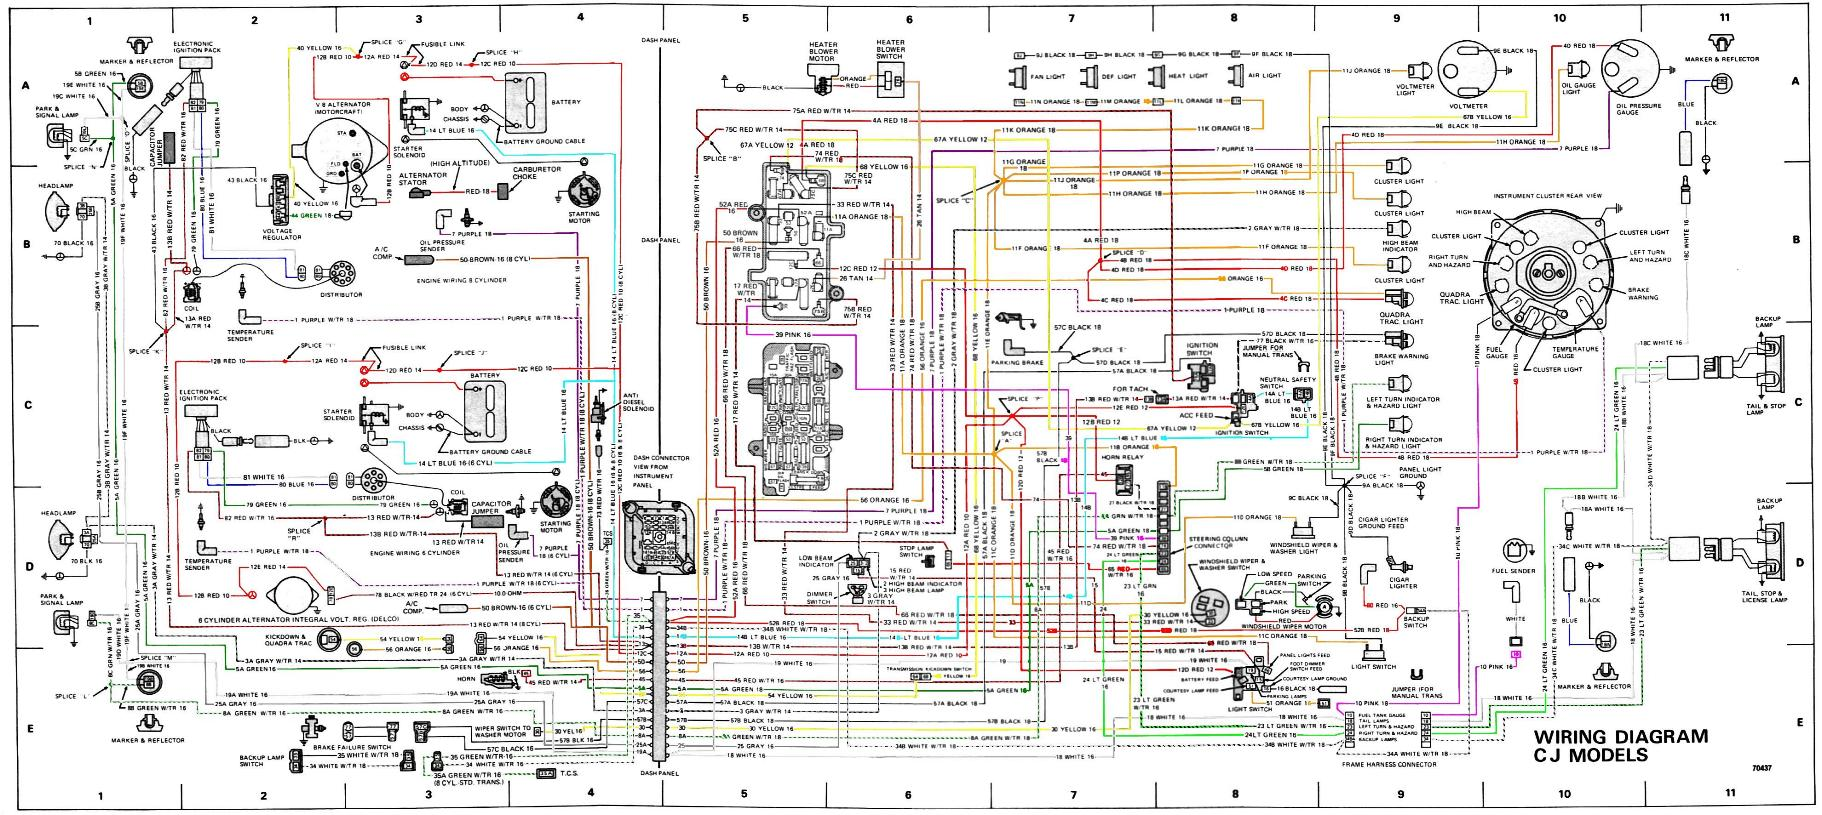 984858d1389333313t electric choke voltage not shutting off cj 7 wiring diagrams colored diagrams 25761110 jeep wiring diagram amc jeep wiring amc jeep wiring schematic at et-consult.org